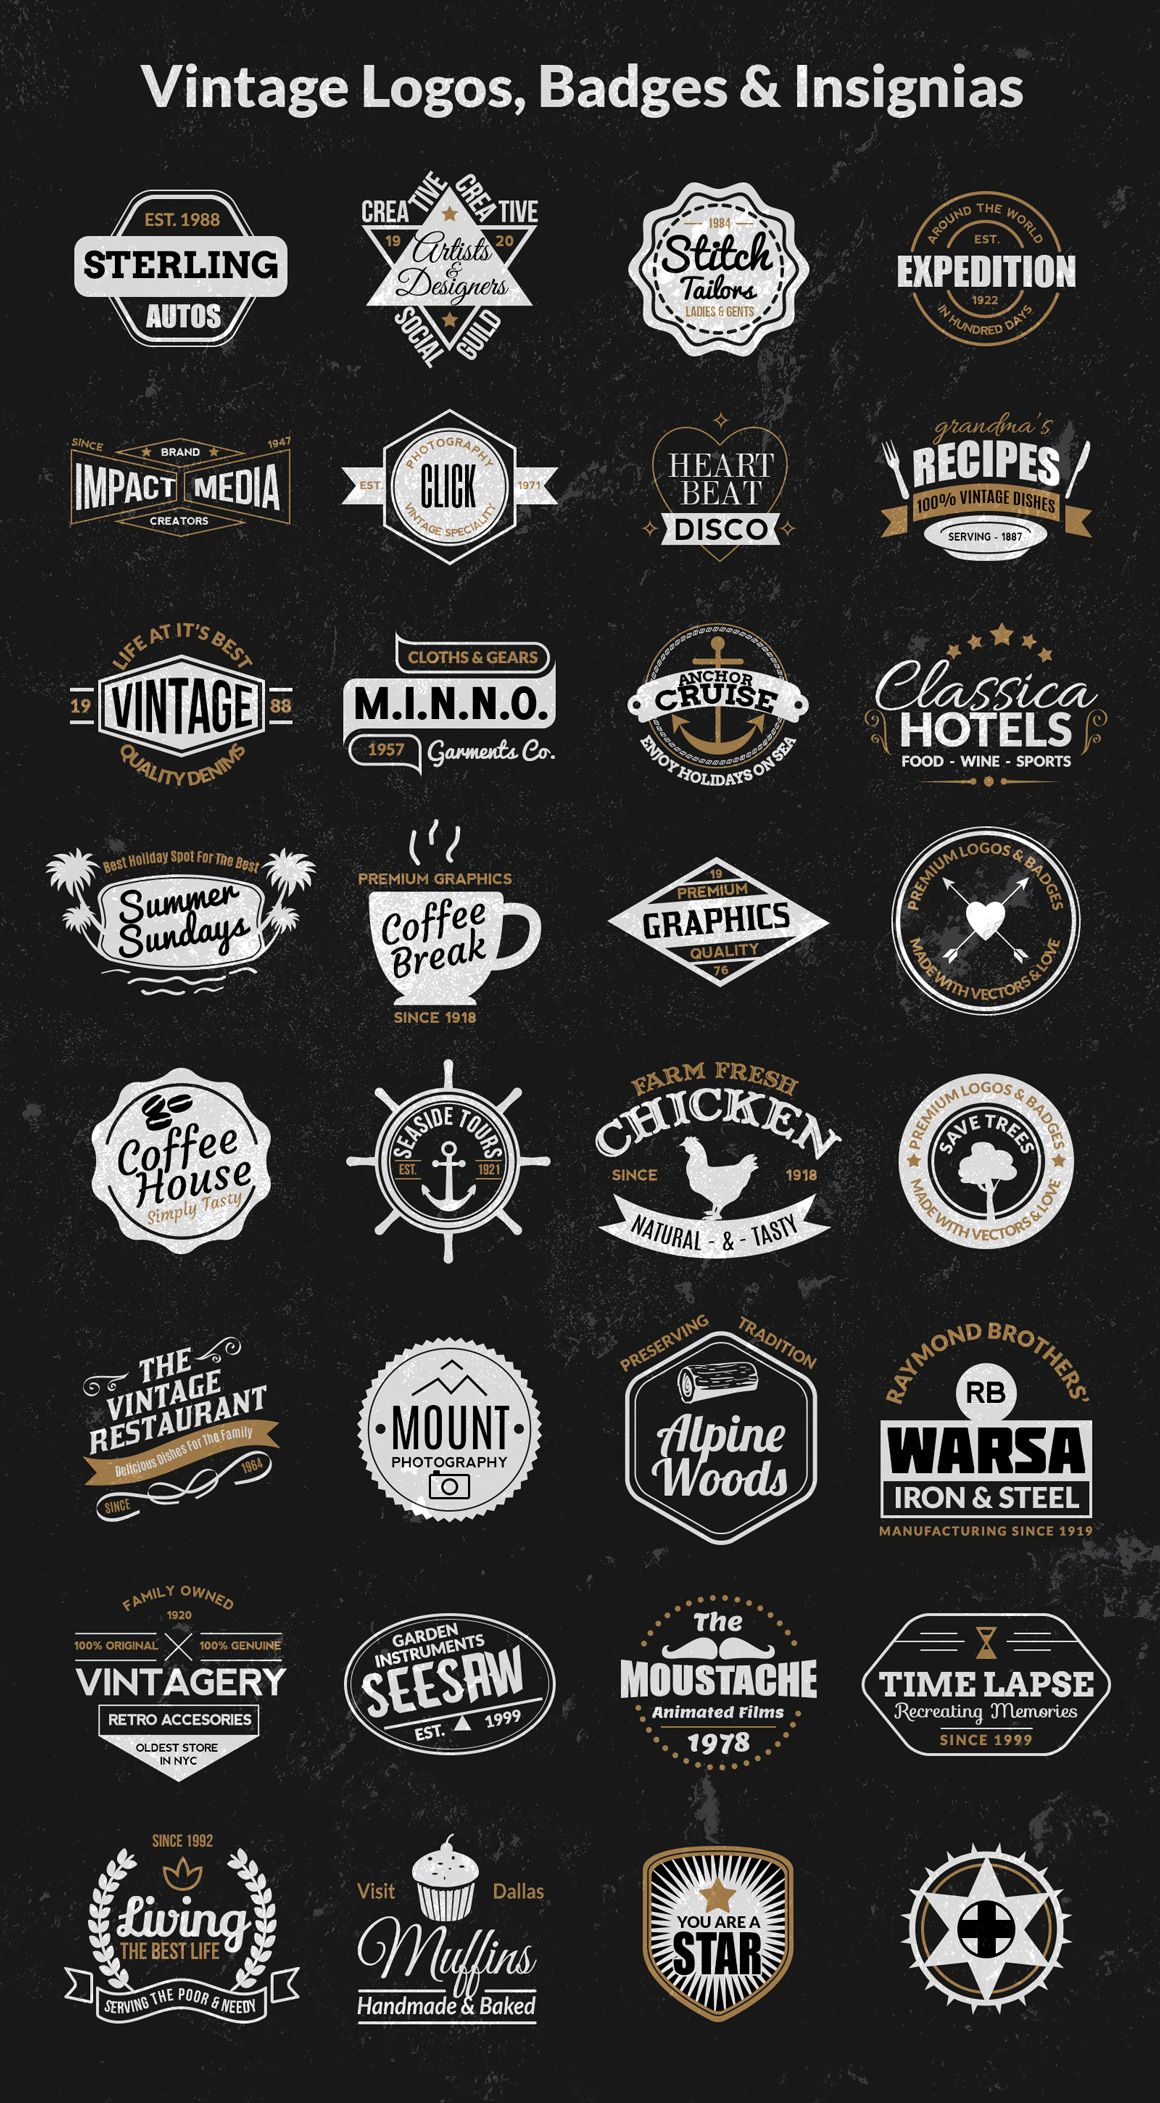 Vintage Logos, Badges, Insignias Kit  Vol 1 is part of Retro logo design, Retro logos, Vintage logo, Vintage logo design, Logo design creative, Branding design logo - This is a vintage logos, badges and insignias kit with 50% off right away  Apart from the discounted price, you'll get an additional pack of 32 logos and badges created using the kit  Use this kit to create your next vintage logo or badge or use our premade logo templates included with this kit  What you'll get 32 Premade logos & badges (Color and black & white, total 64) 53 Badge Elements 70 Icon Elements 6 Bonus Textures Multiple file formats  Ai,  EPS,  PSD,  CSH,  JPEG (textures) All elements are vector based and the text is editable as weel  Additionally, I have included PSD Custom Shapes ( CSH) for all the elements, so it will be super easy for you to just get started with the kit  The details of the free fonts used in the work are included in the readme text file  Uses of the kit There are multiple uses of the kit  You can create classic vintage logos, badges, labels, insignias, typographic content, business cards, clothing, posters, websites and banner and many more   Uses are numerous, you only have to use your imagination  Total value for your money!! Commercial License $9 Regular Price $18 (50% Off) Payment via Paypal Format  ASL,  PSD Download Size 49 3 MB (zip) License